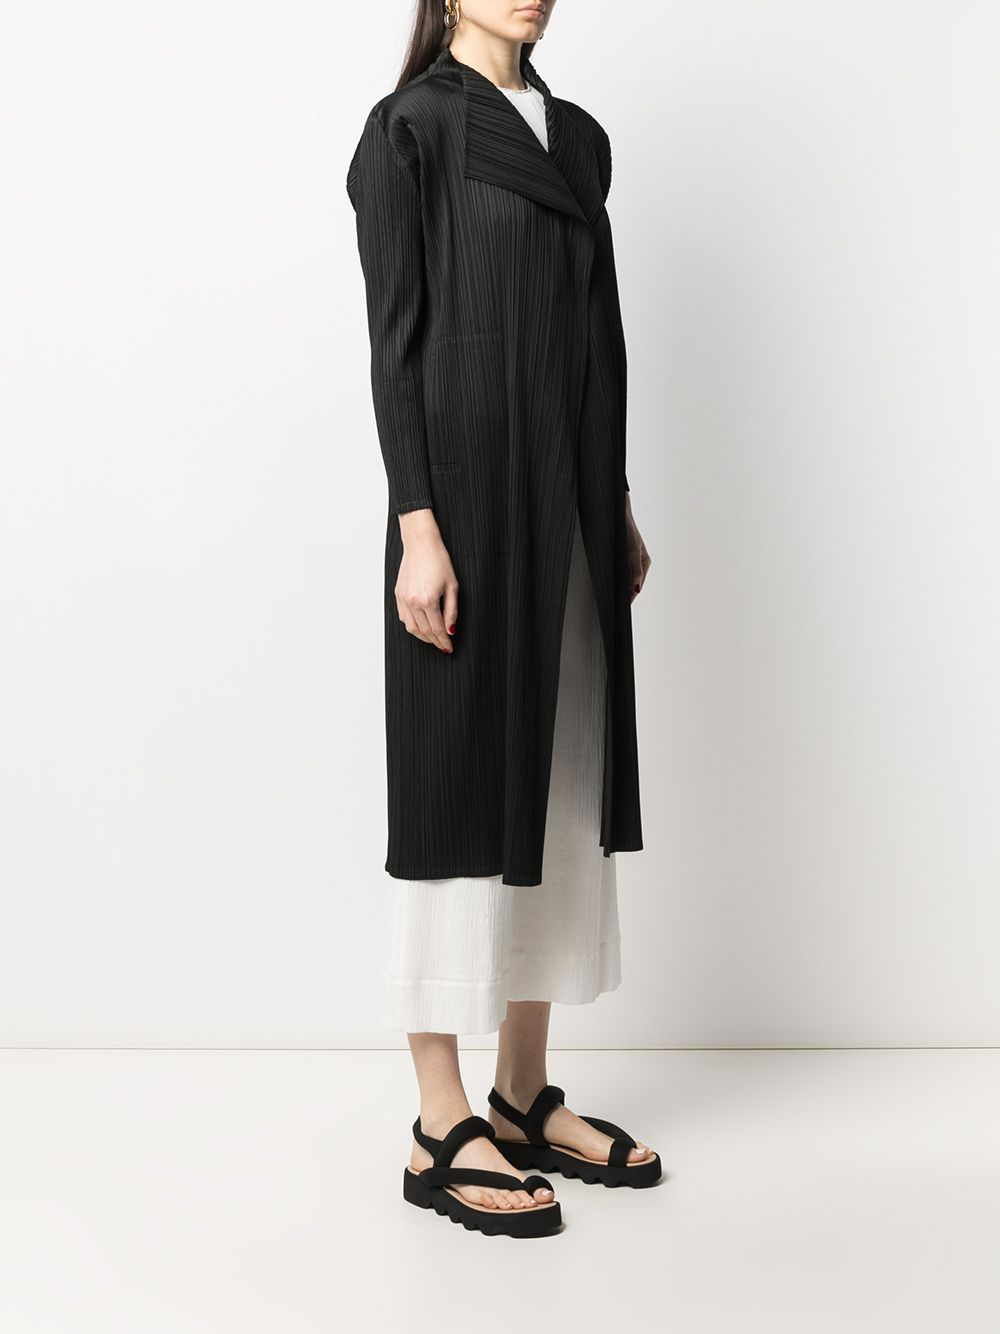 Picture of Issey Miyake Pleats Please | Plissé Long Coat